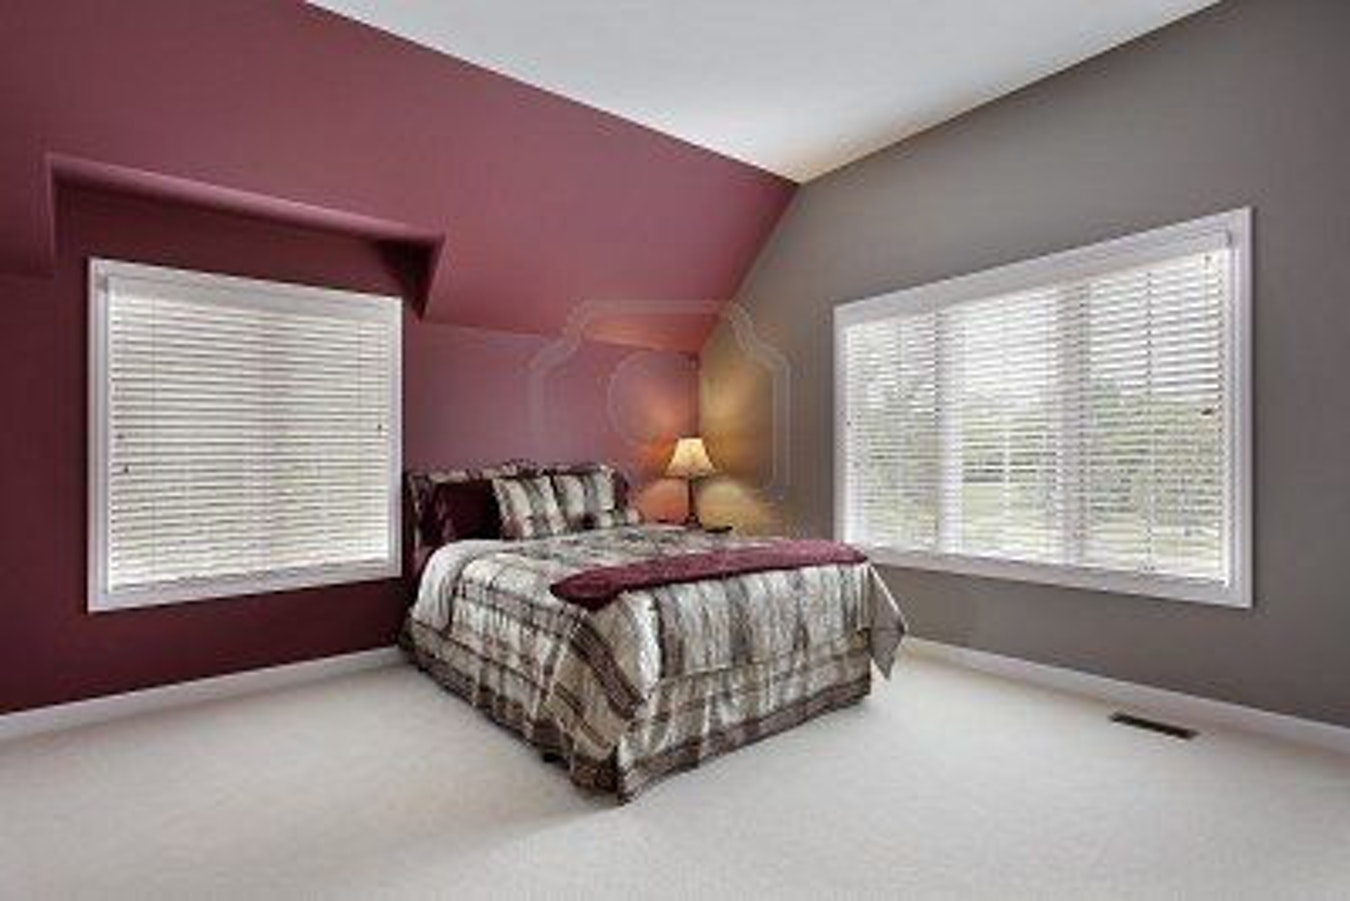 Burgundy And Grey Bedroom Maroon Walls Pink Entertaining Depiction Regarding Most Recent Maroon Wall Accents (View 7 of 15)